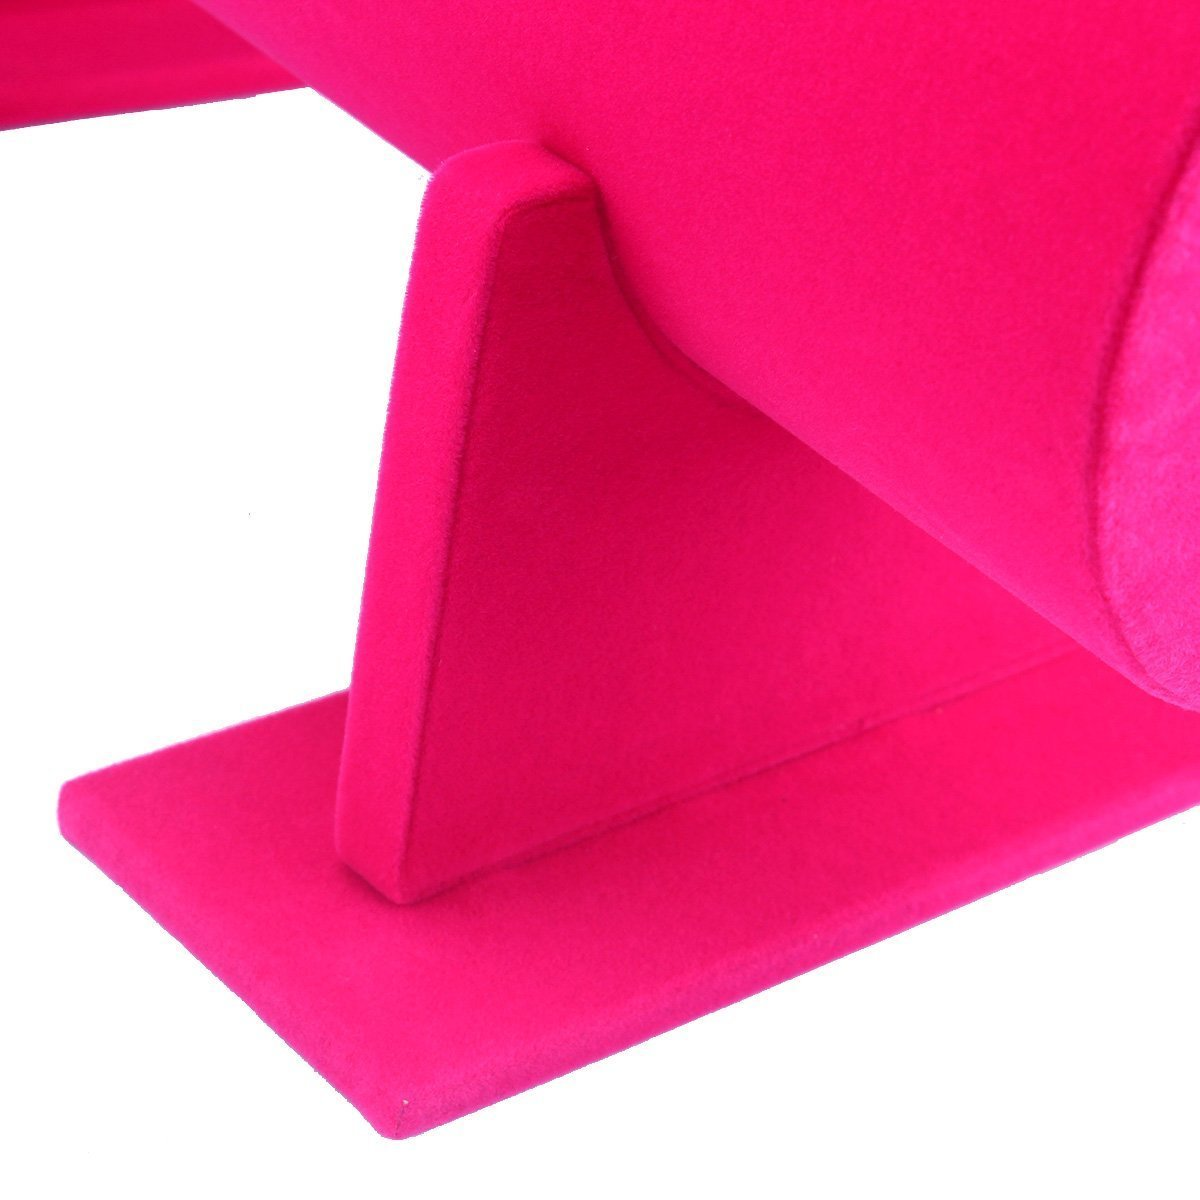 Funi Velvet Hairband Headband Holder Retail Shop Display Stand Rack Holder (14'', Pink) by Funi (Image #4)